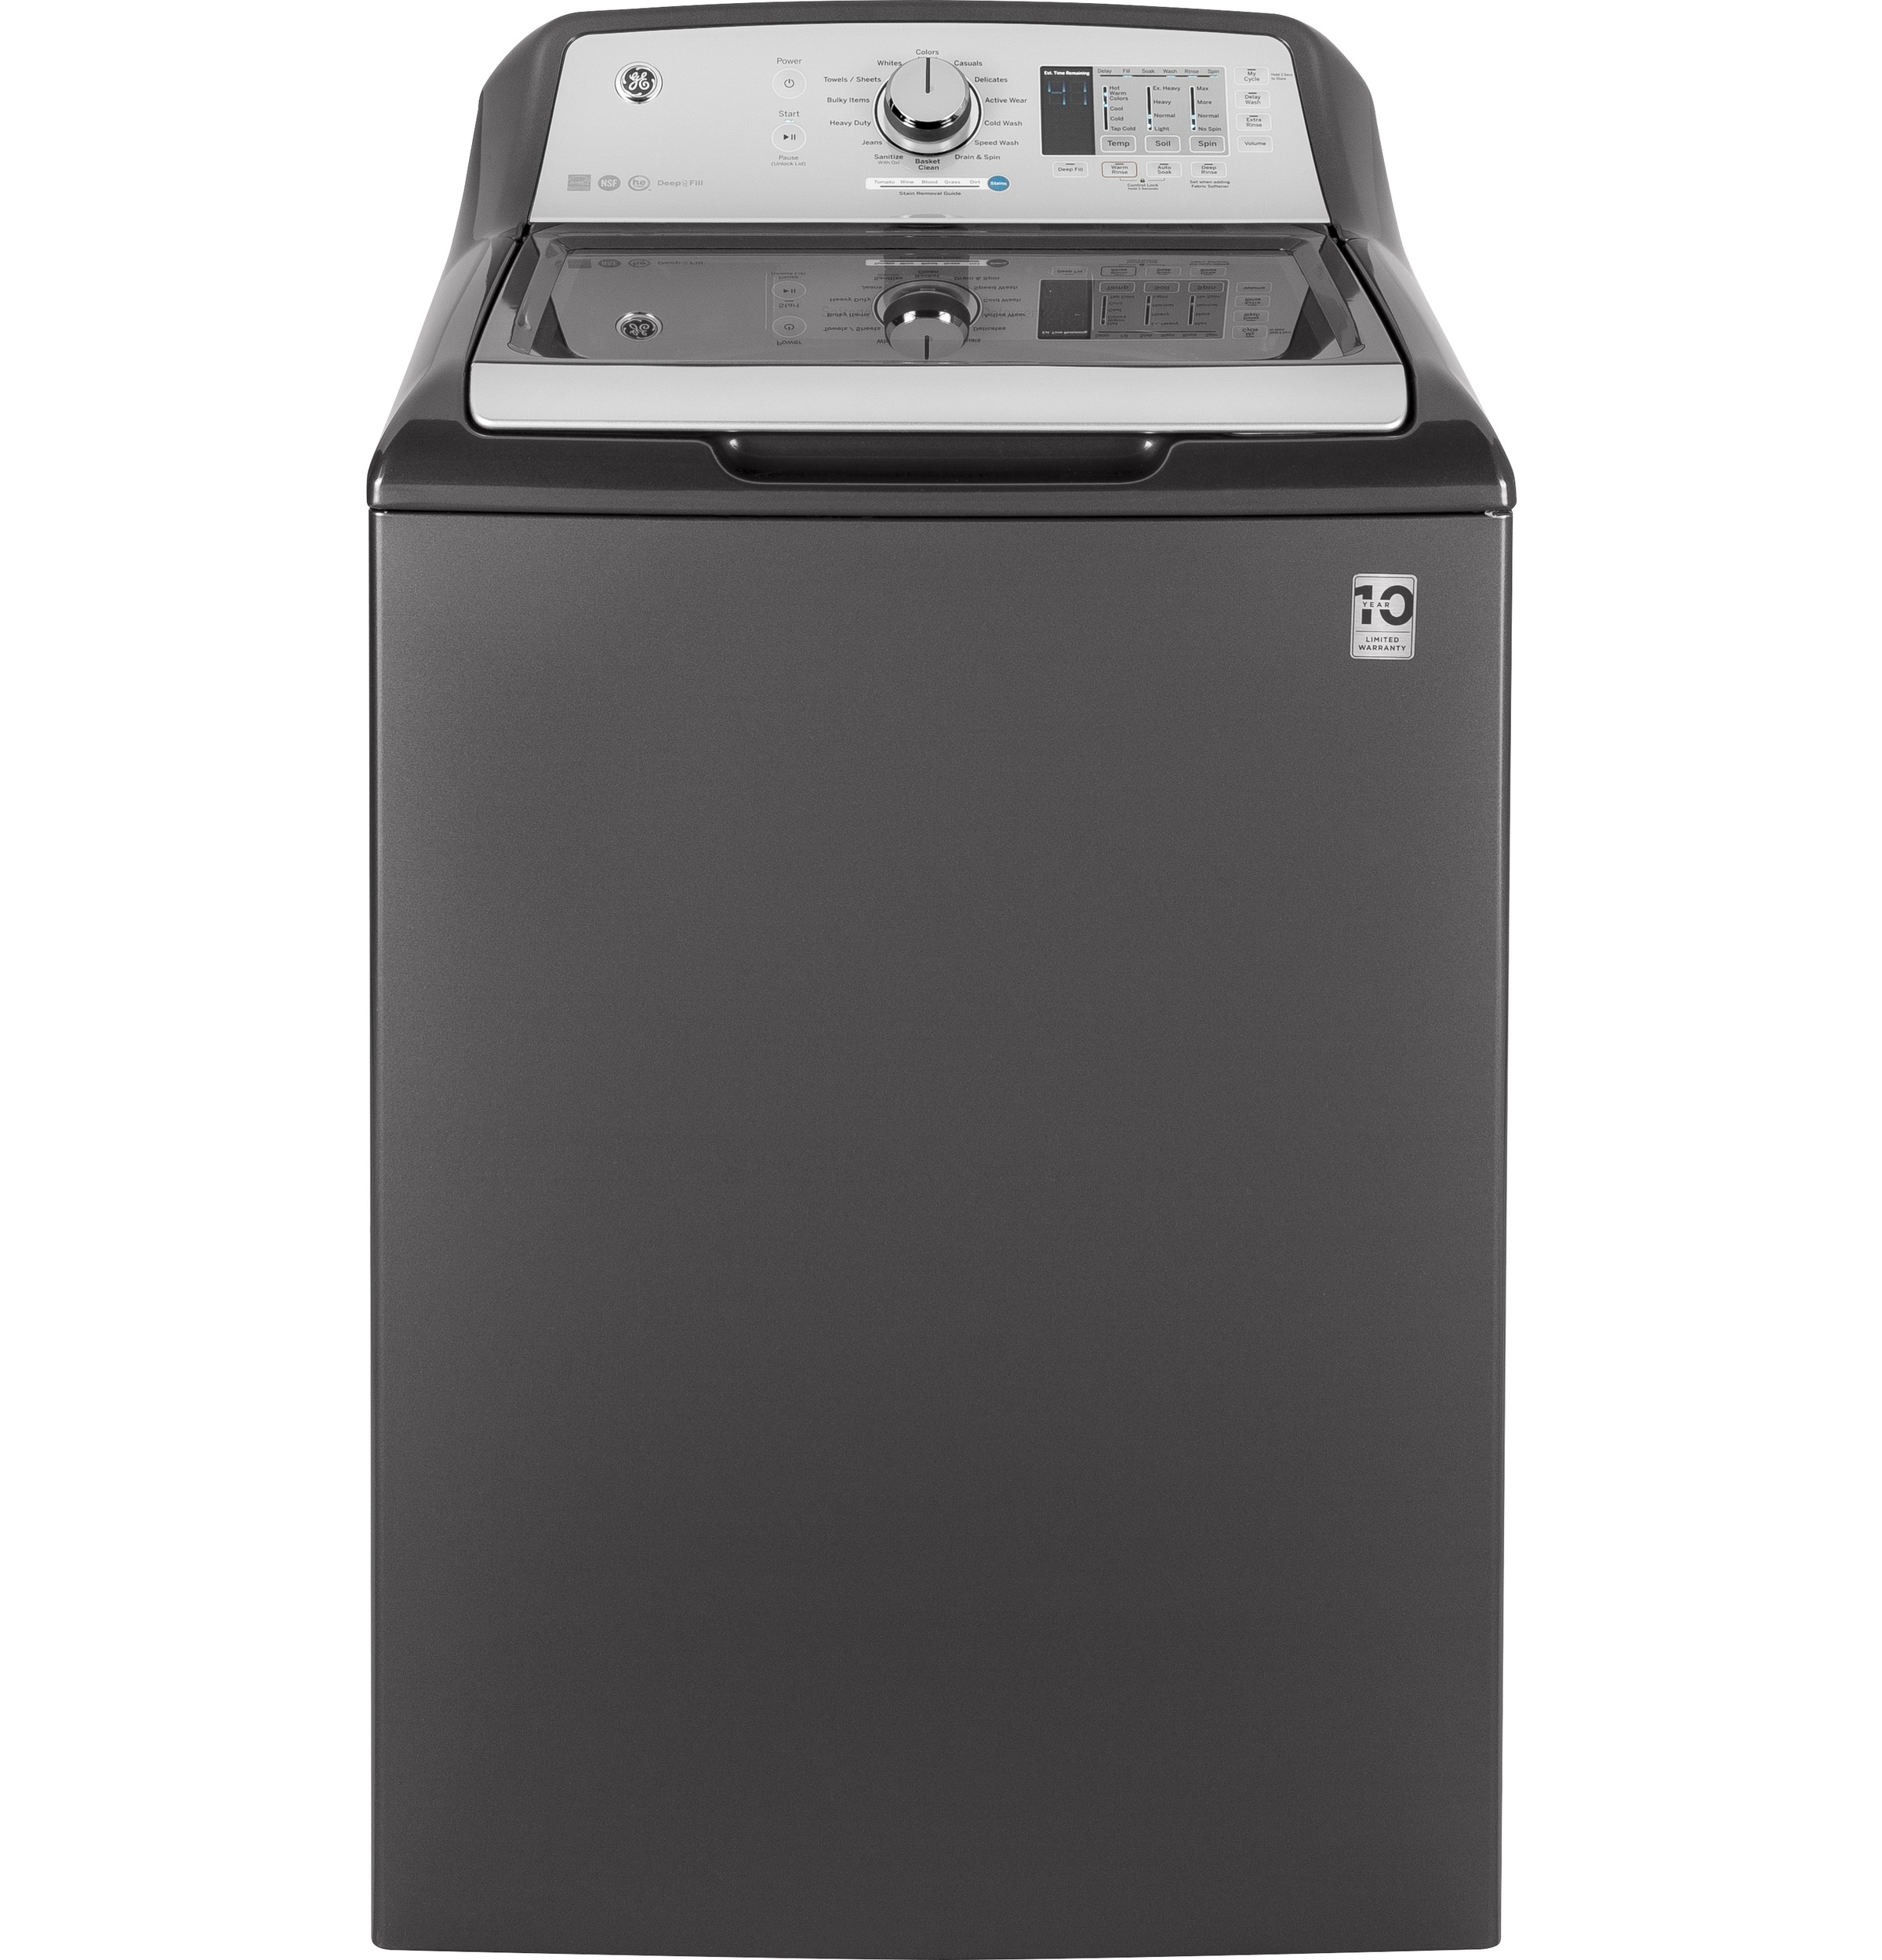 Model: GTW685BPLDG | GE® 4.5  cu. ft. Capacity Washer with Stainless Steel Basket